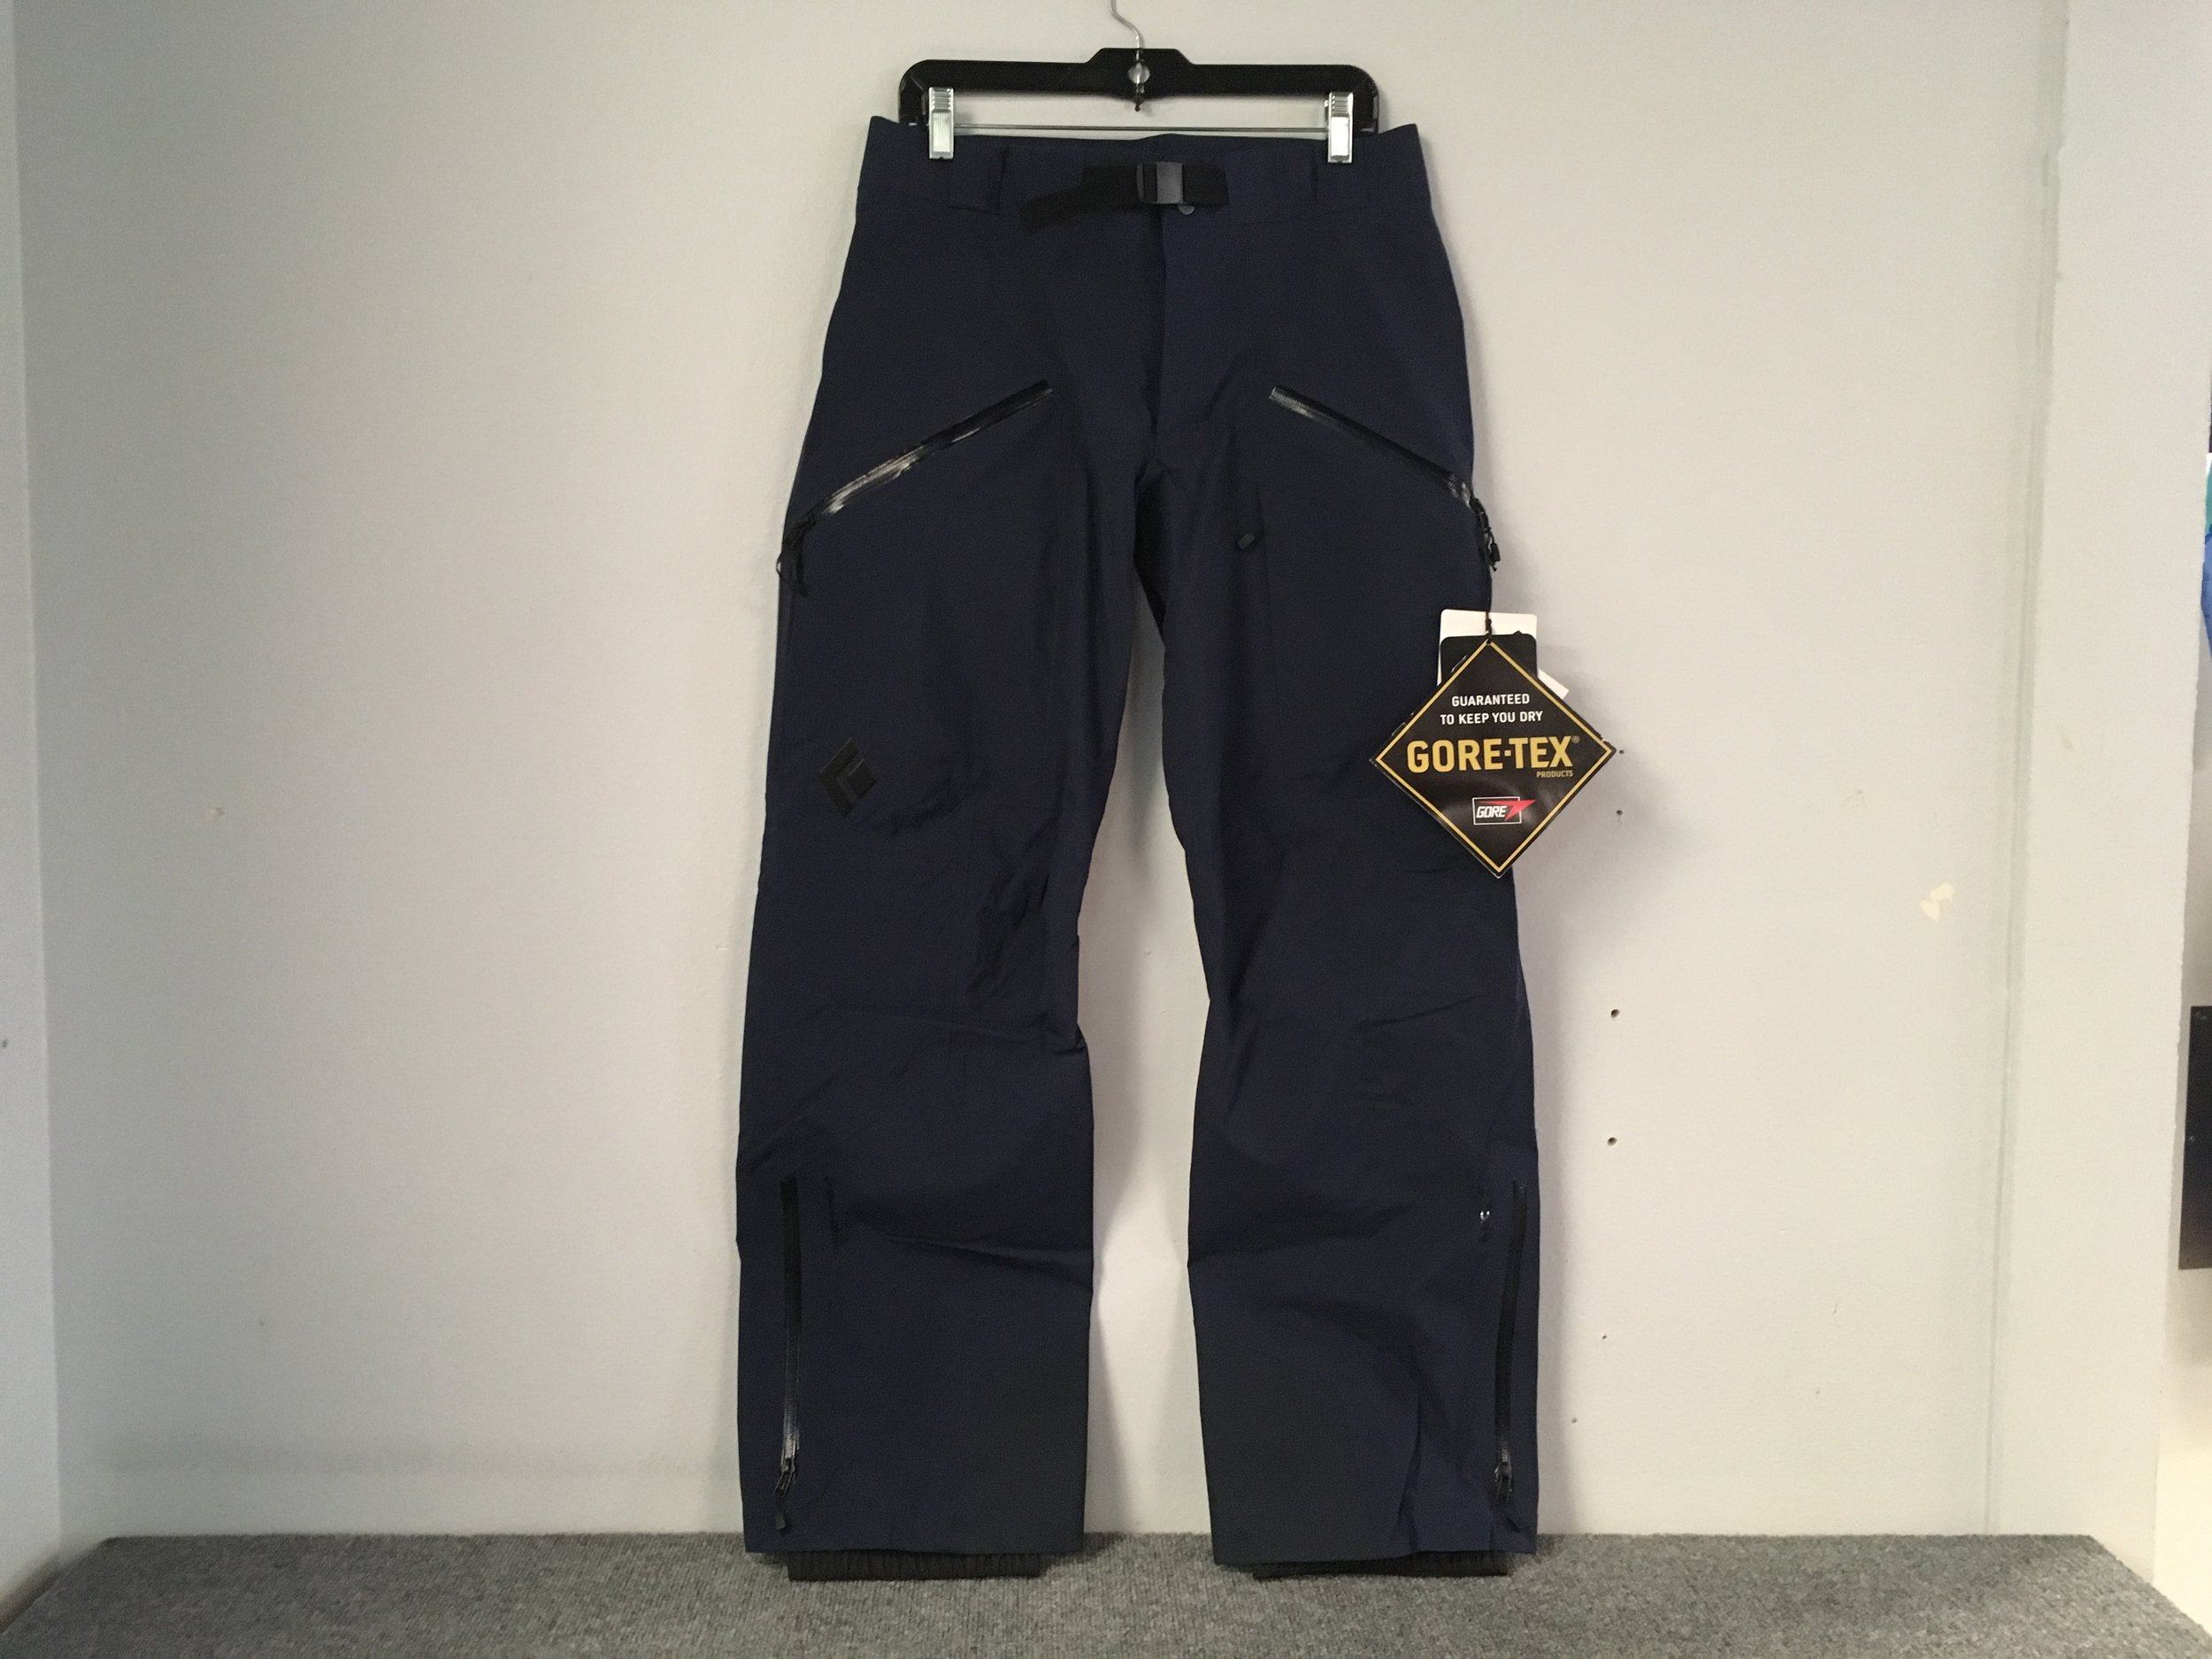 If you're travelling in the backcountry you need the Mission pants from Black Diamond! The Mission's feature Gore-Tex fabric, full zip vents, and a built in beacon harness. Retail is listed at $450 but we got you covered at $229. The size is a women's medium.